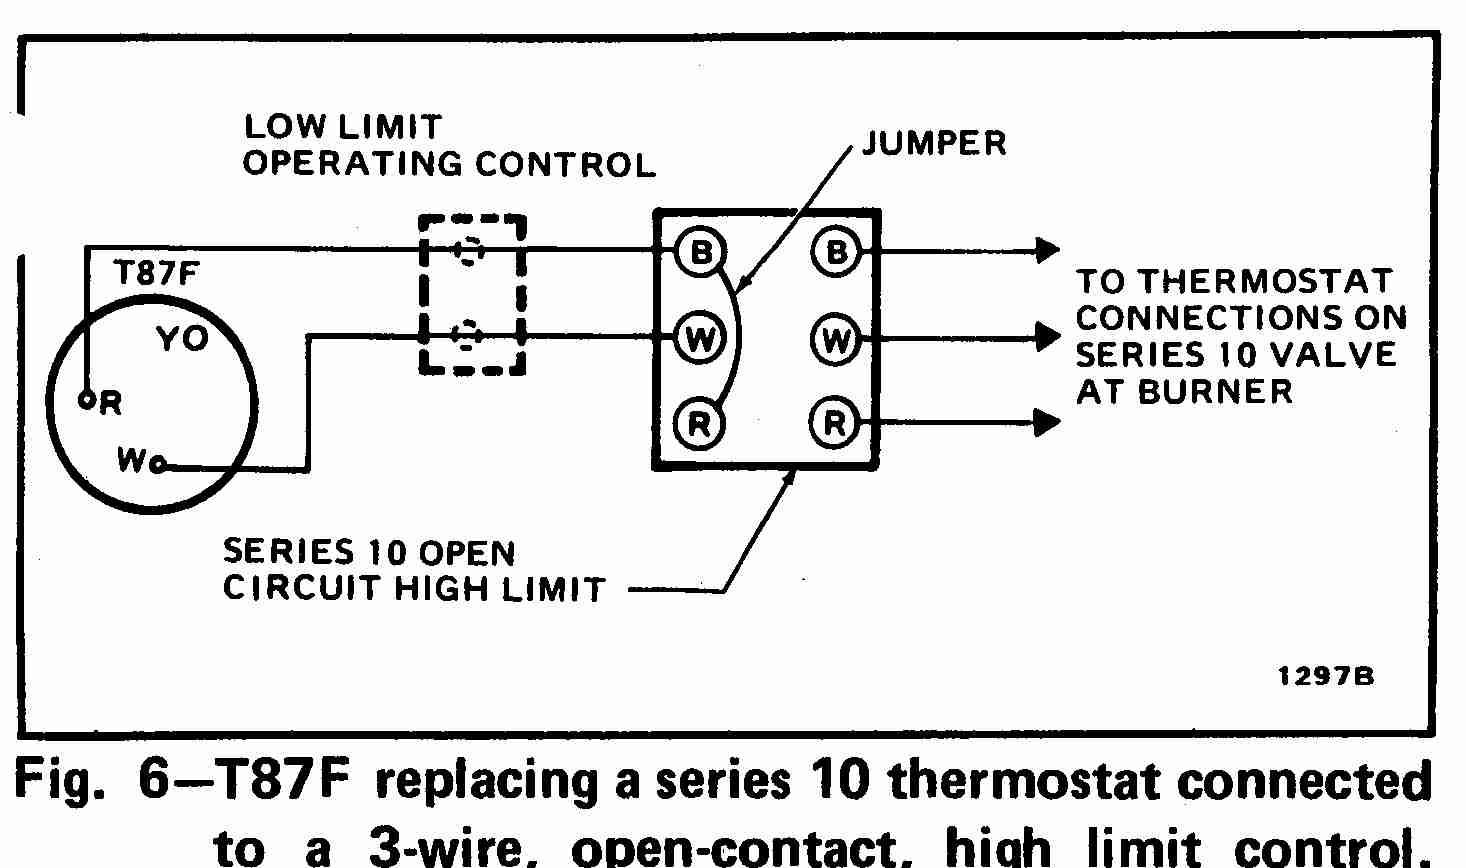 TT_T87F_0002_3WHL_DJF room thermostat wiring diagrams for hvac systems fcu wiring diagram at virtualis.co